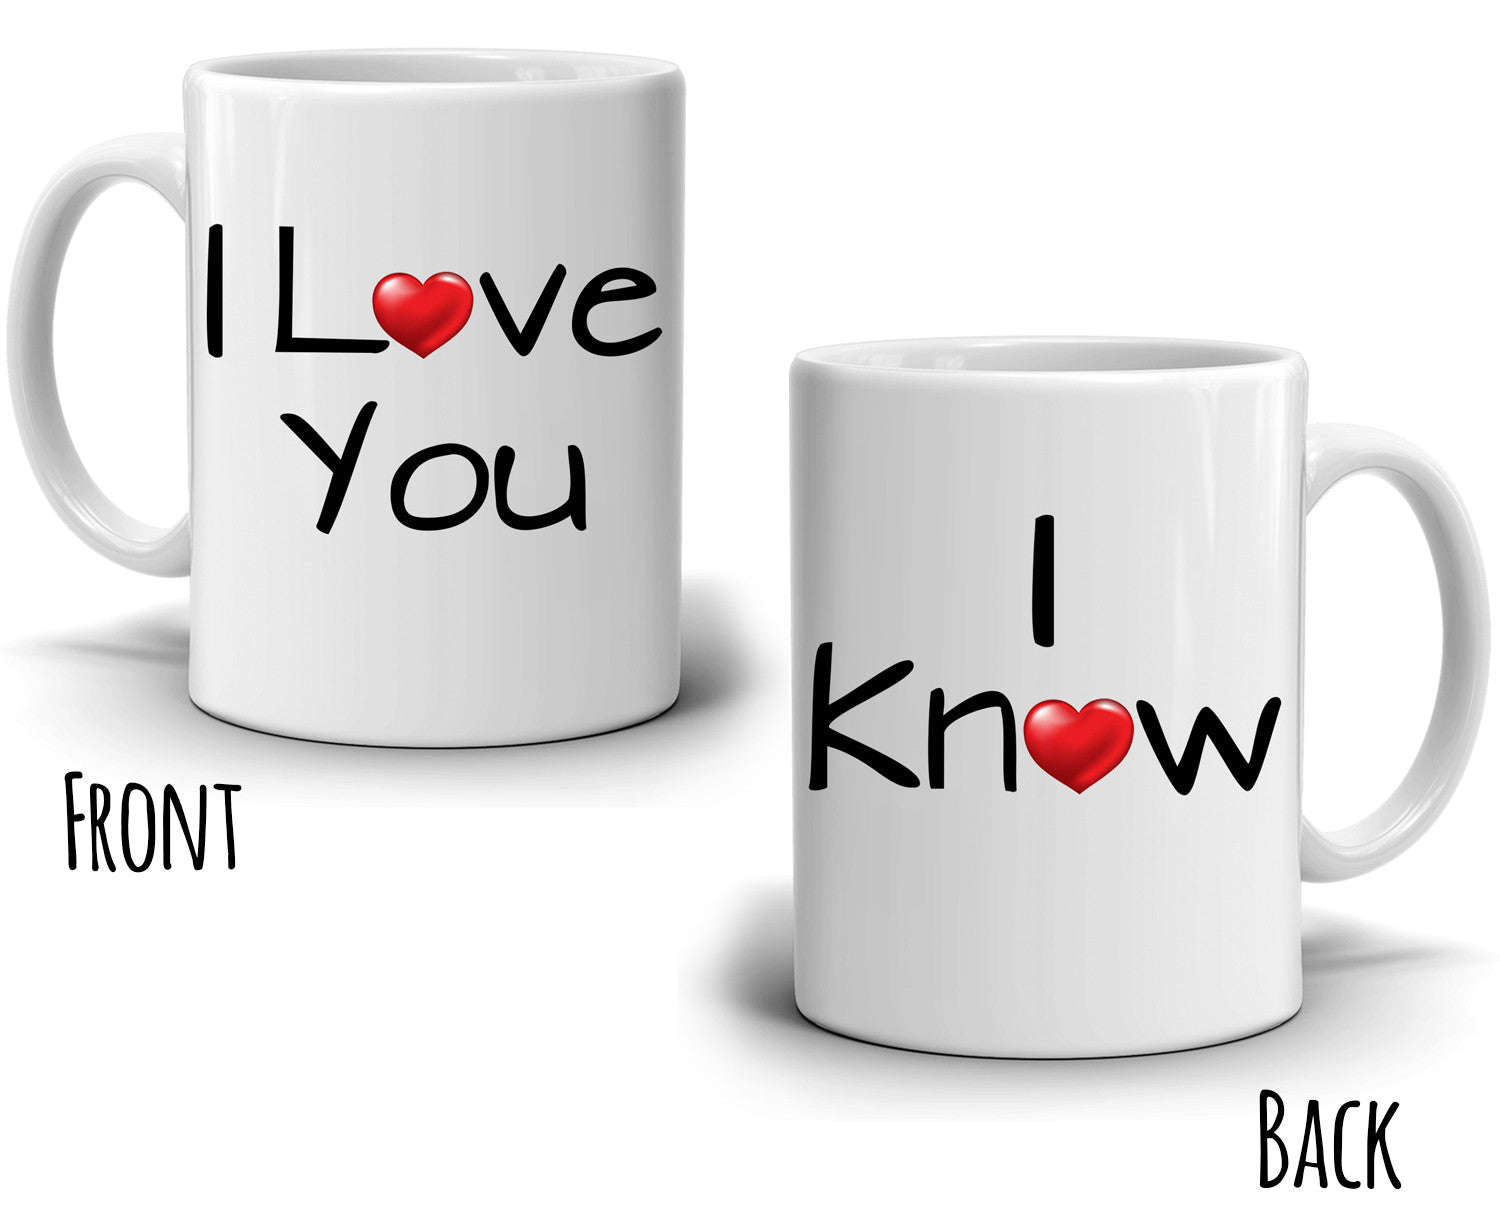 His And Her Gifts For Wedding: Funny His And Her Couples Bride Groom Engagement Gift